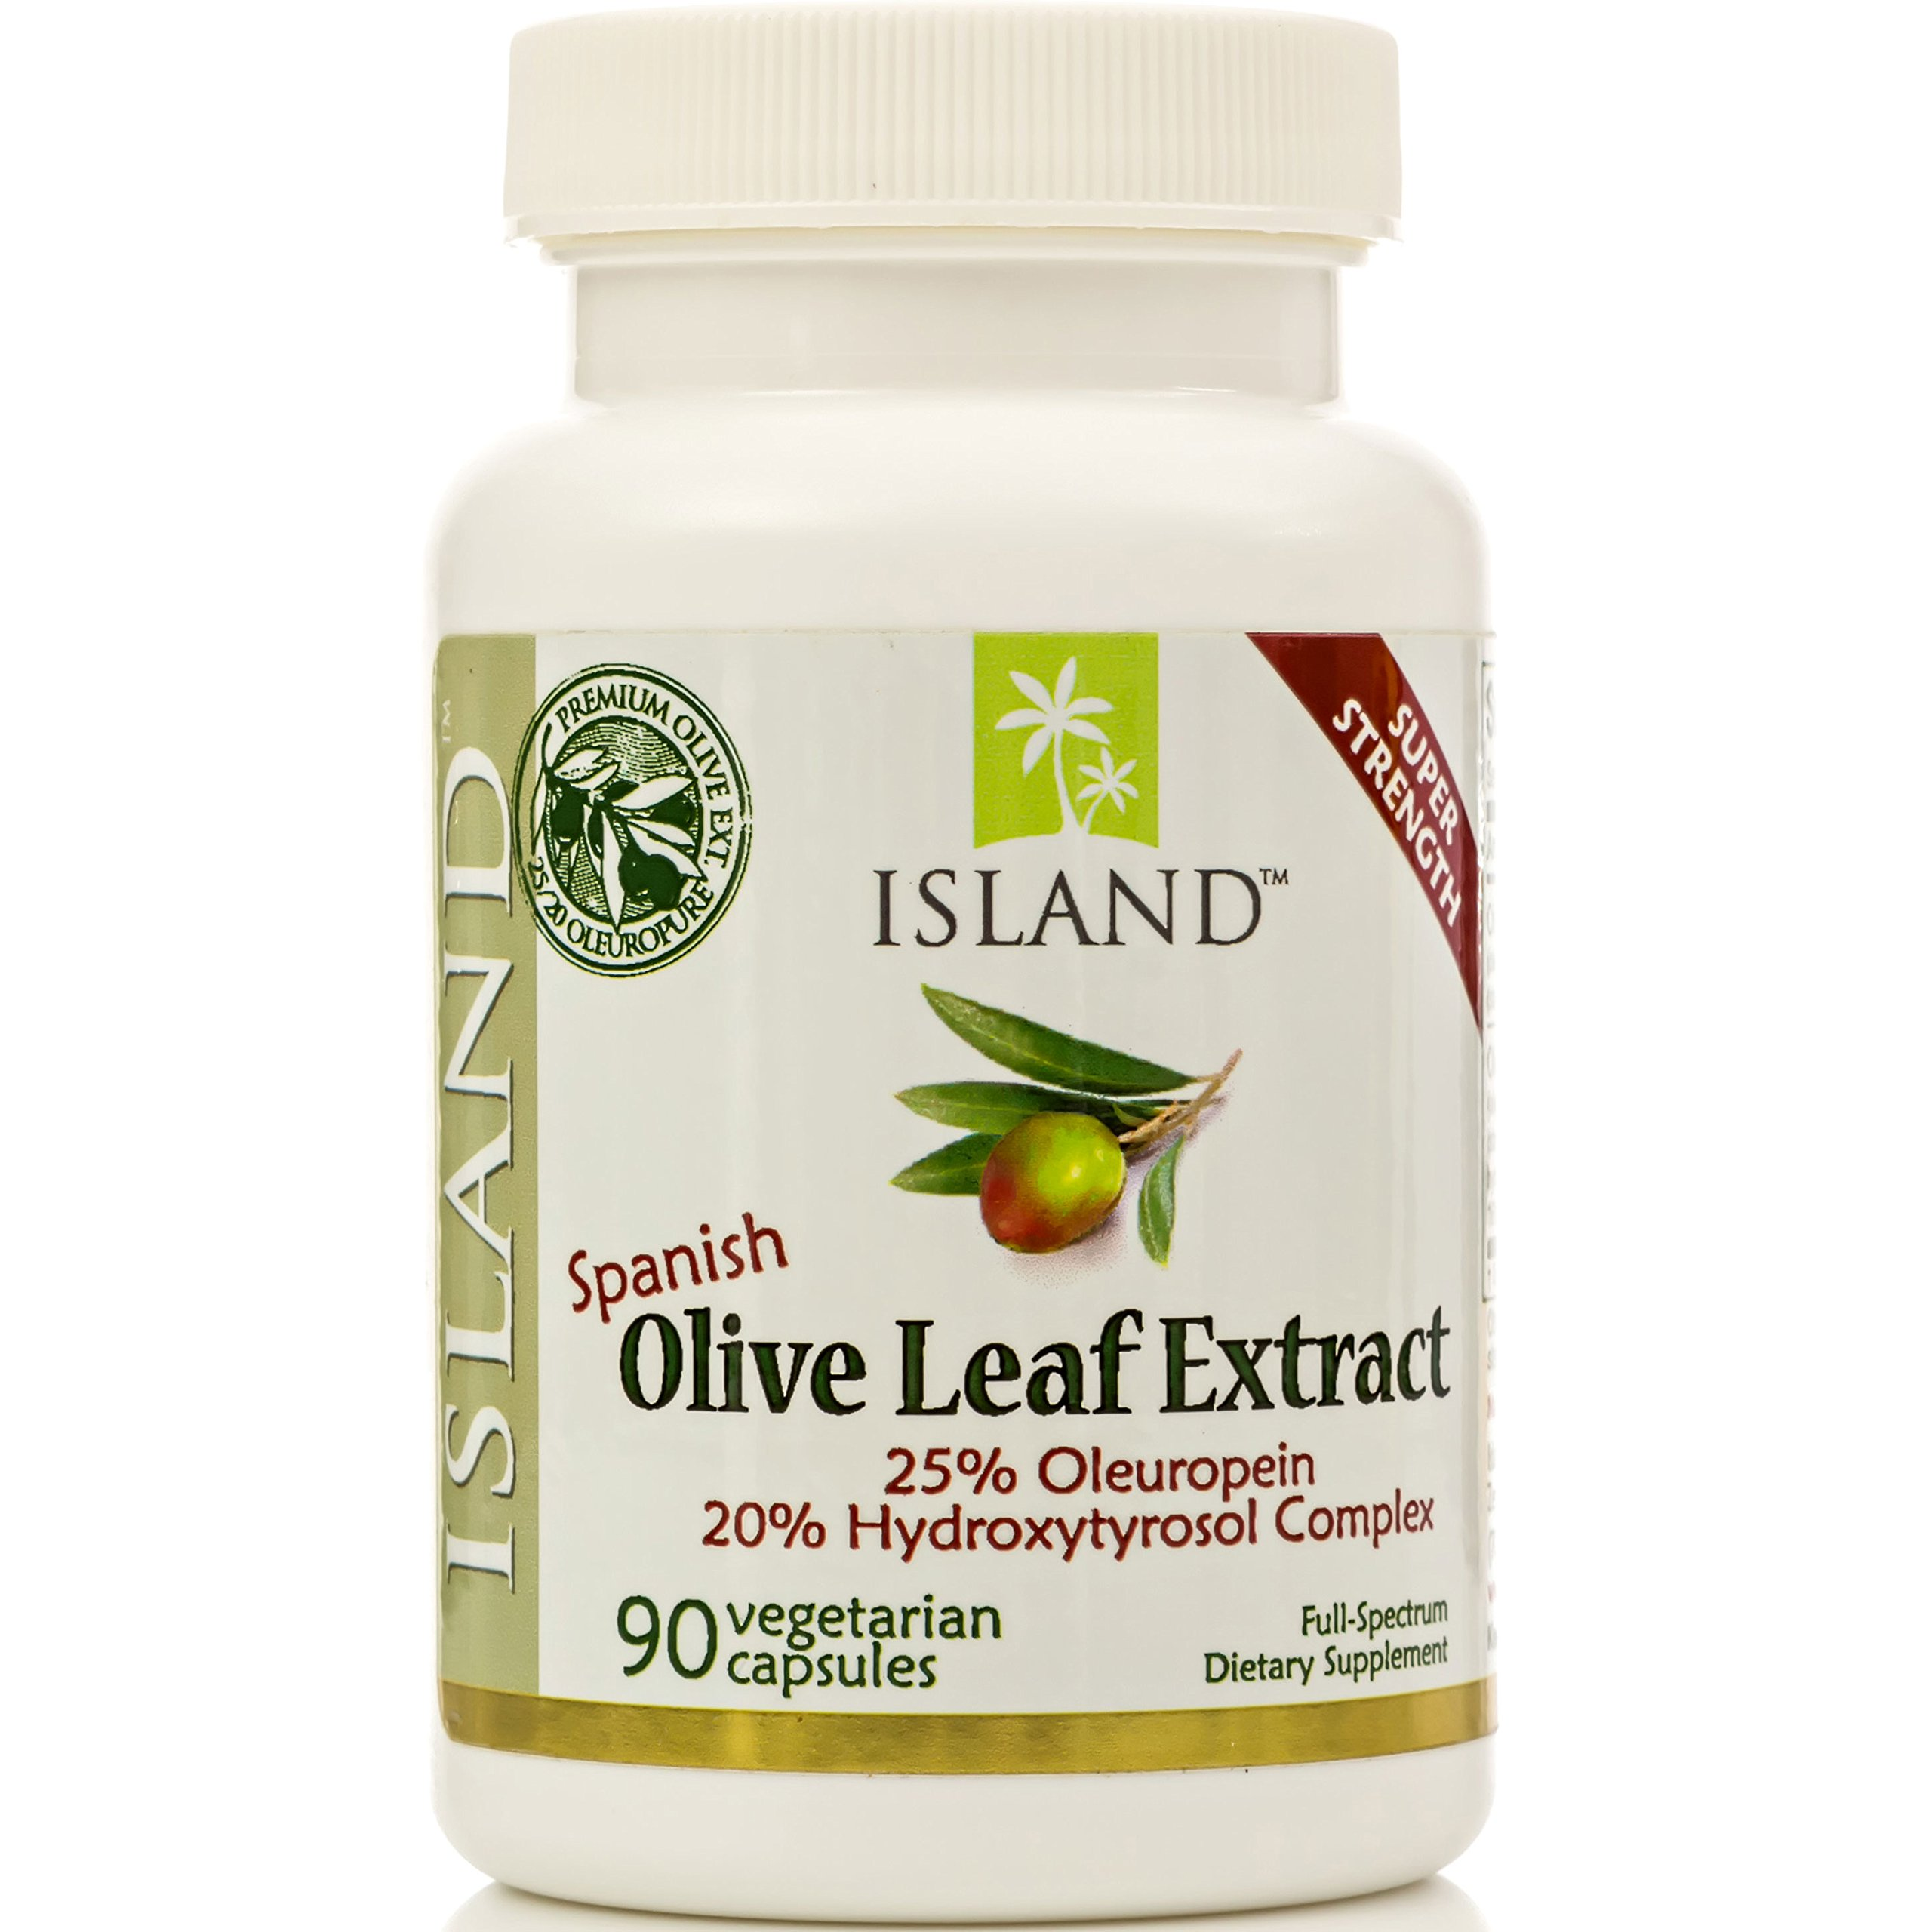 Real European Olive Leaf Extract - 25% Oleuropein, Plus 20% Hydroxytyrosol ComplexTM - 100% Grown & Extracted in Spain - Super-Strength Capsules by Island Nutrition® by Island Nutrition